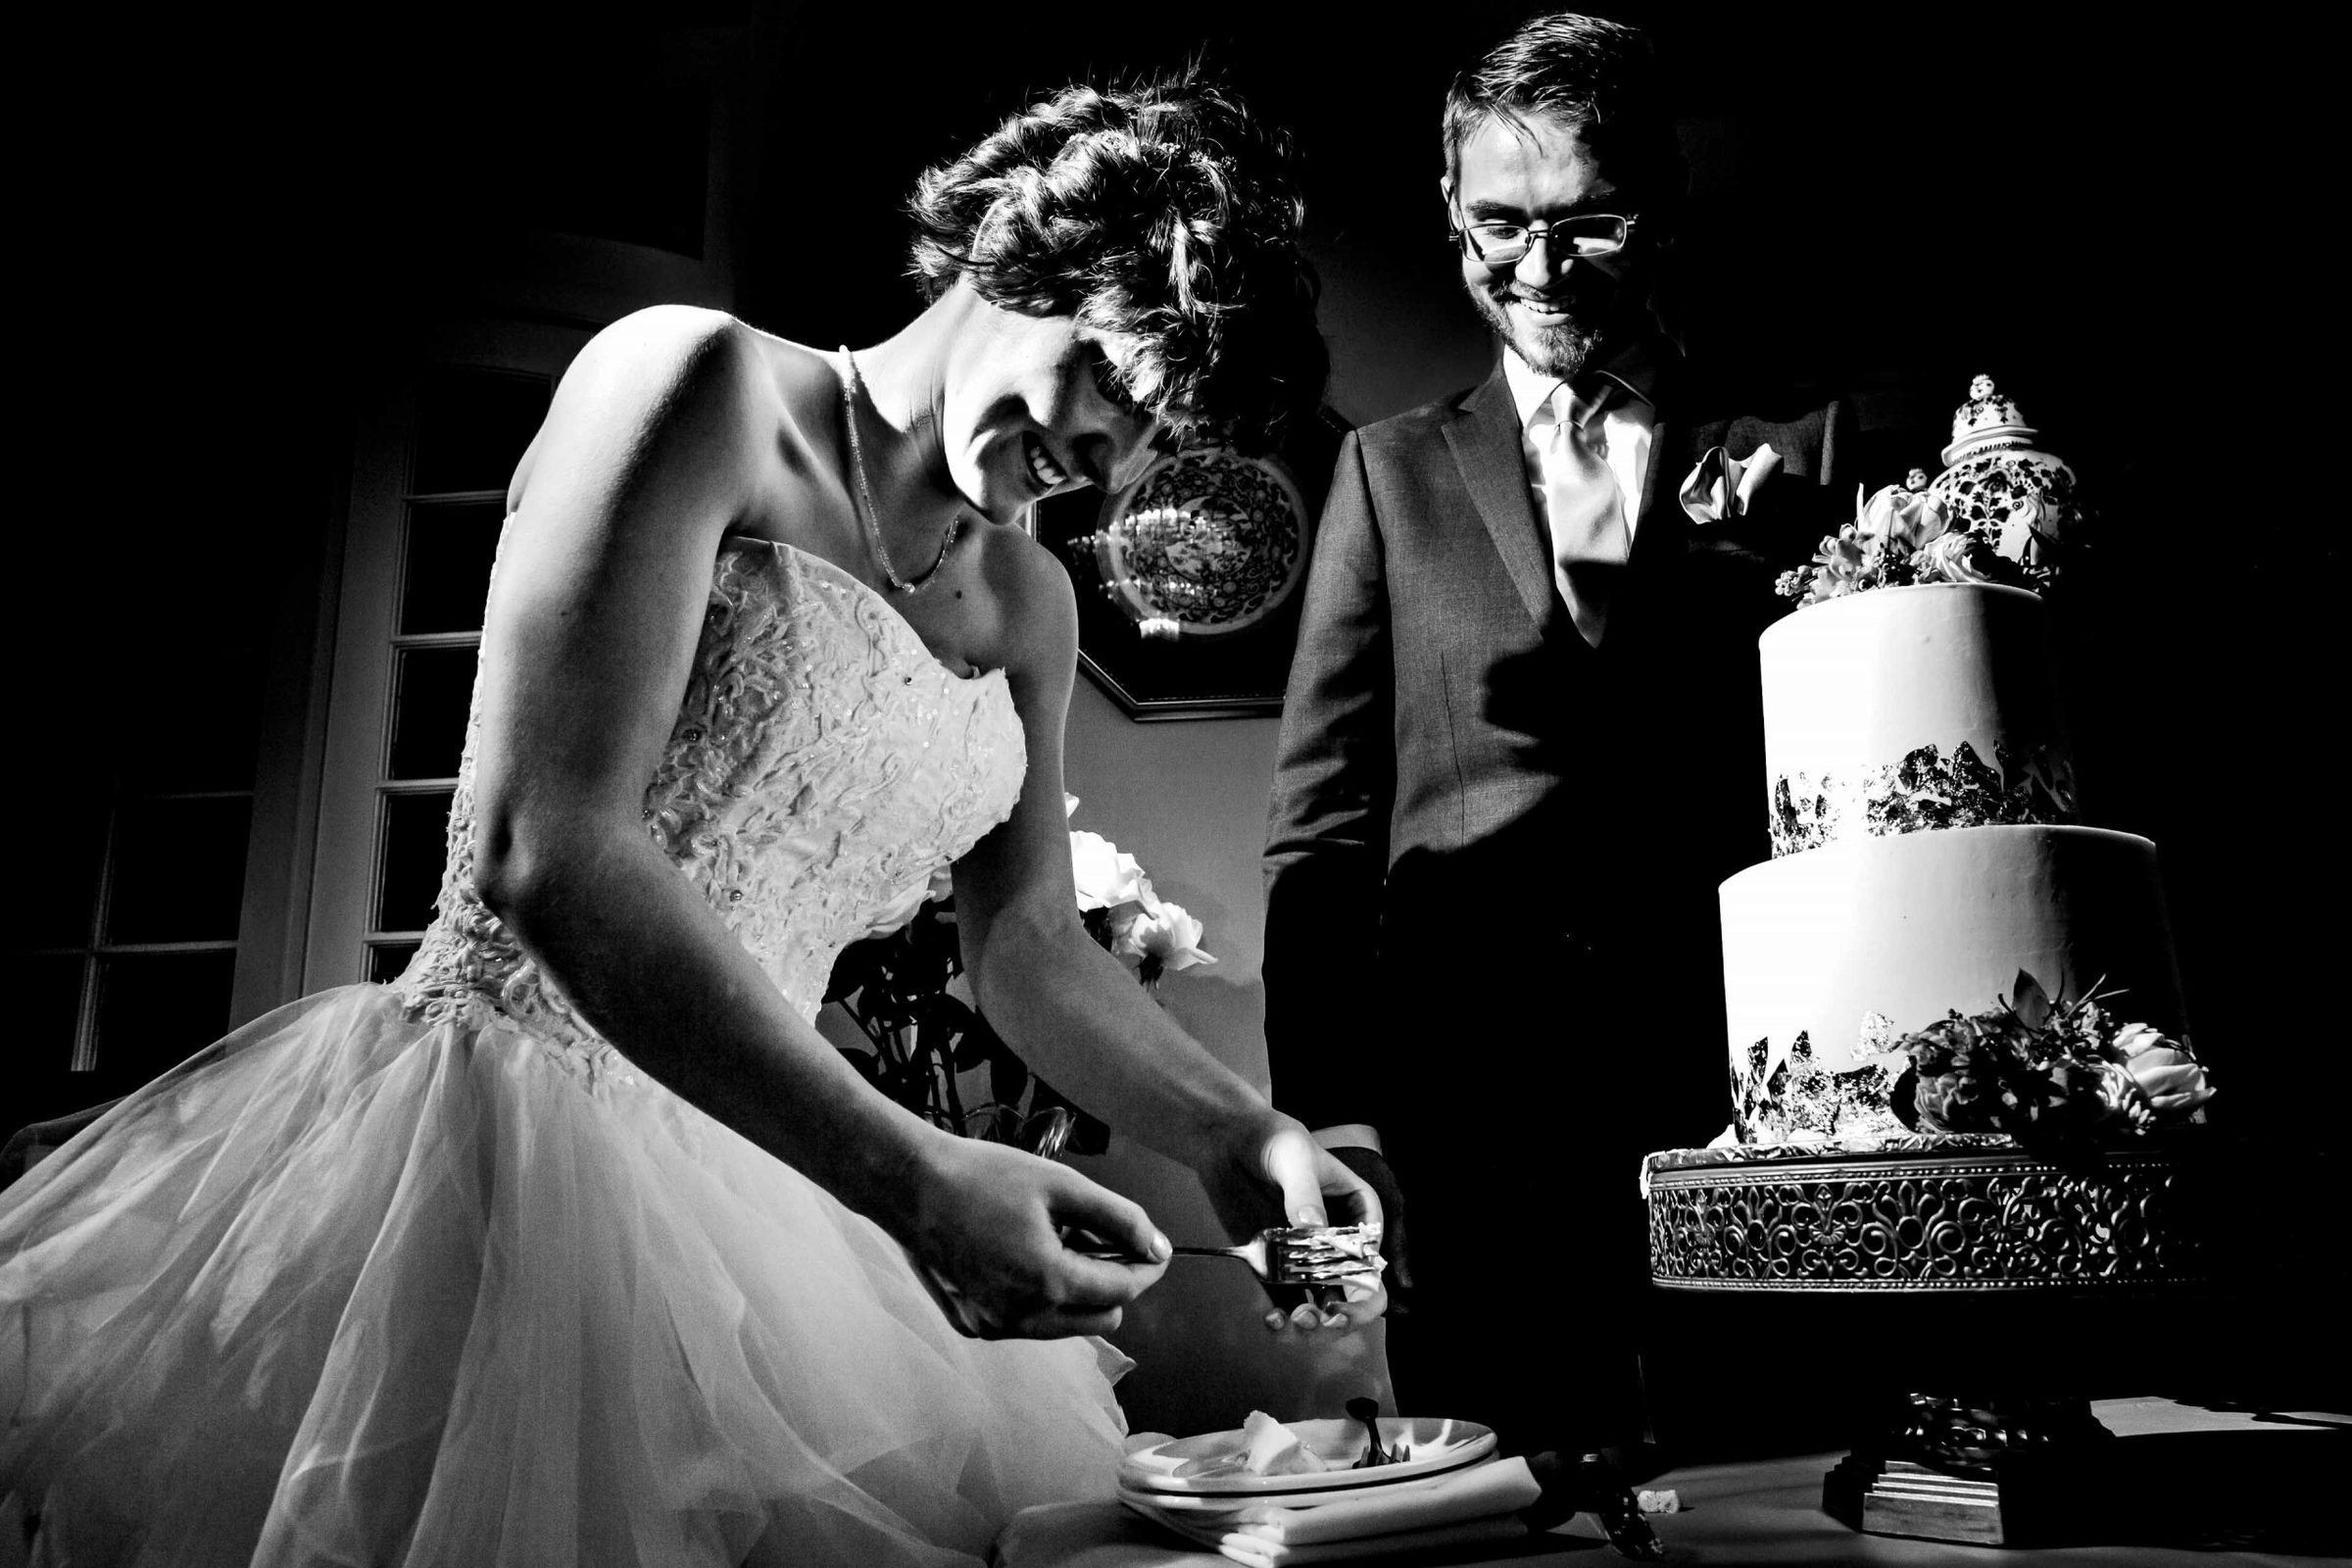 Bride and groom cutting cake during their Portland White House wedding ceremony